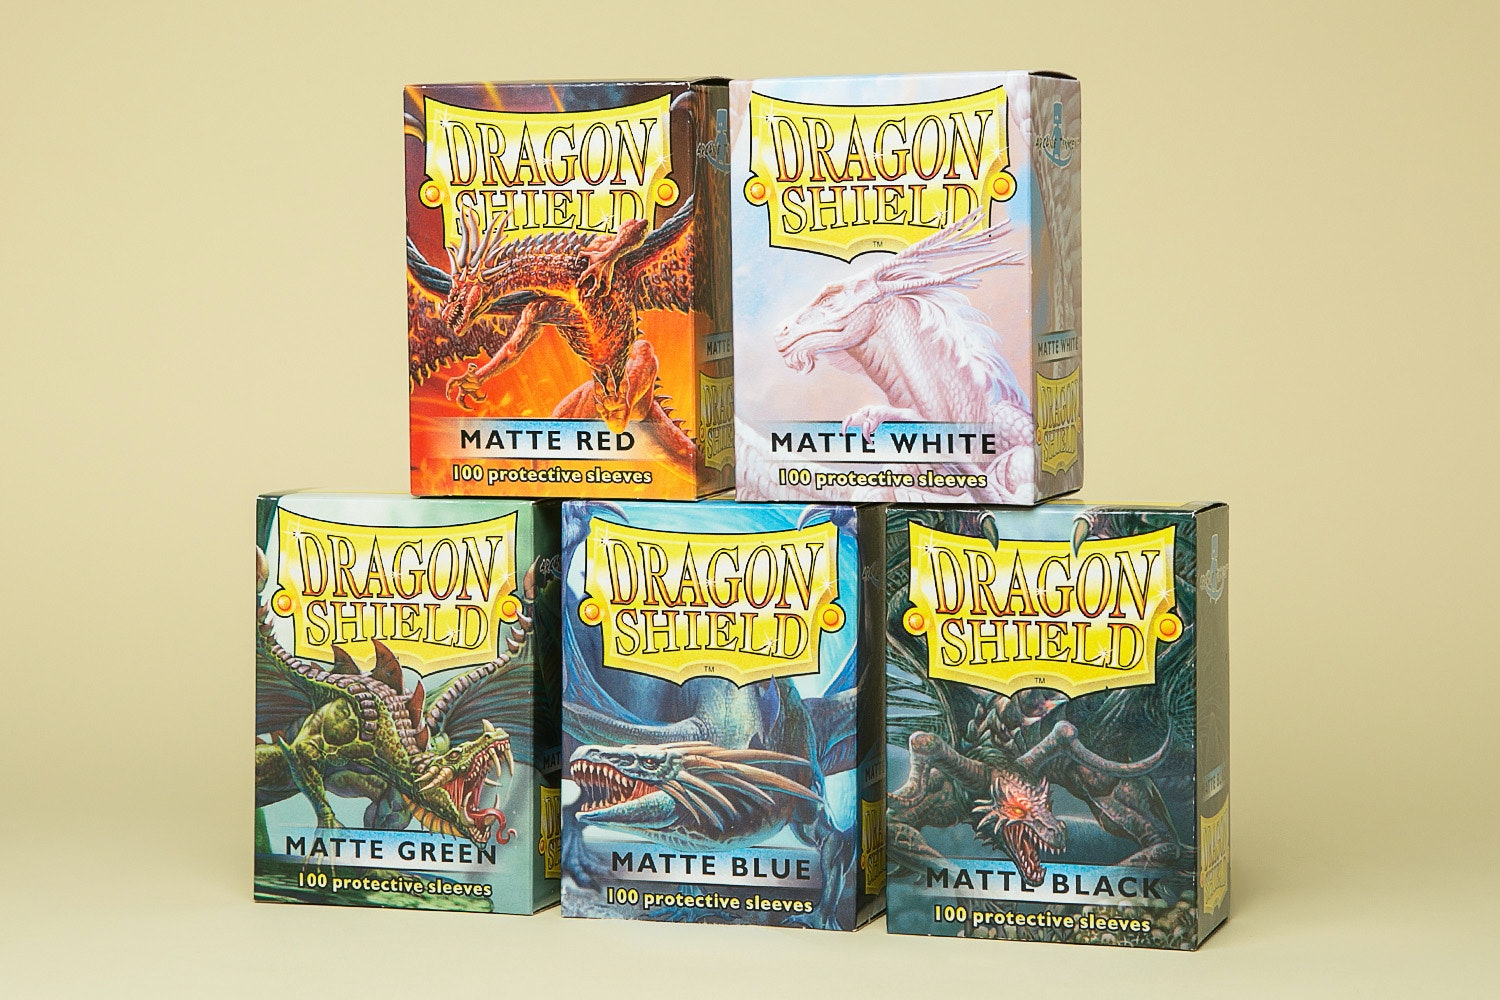 Dragon Shield Matte Sleeves (6-Pack)